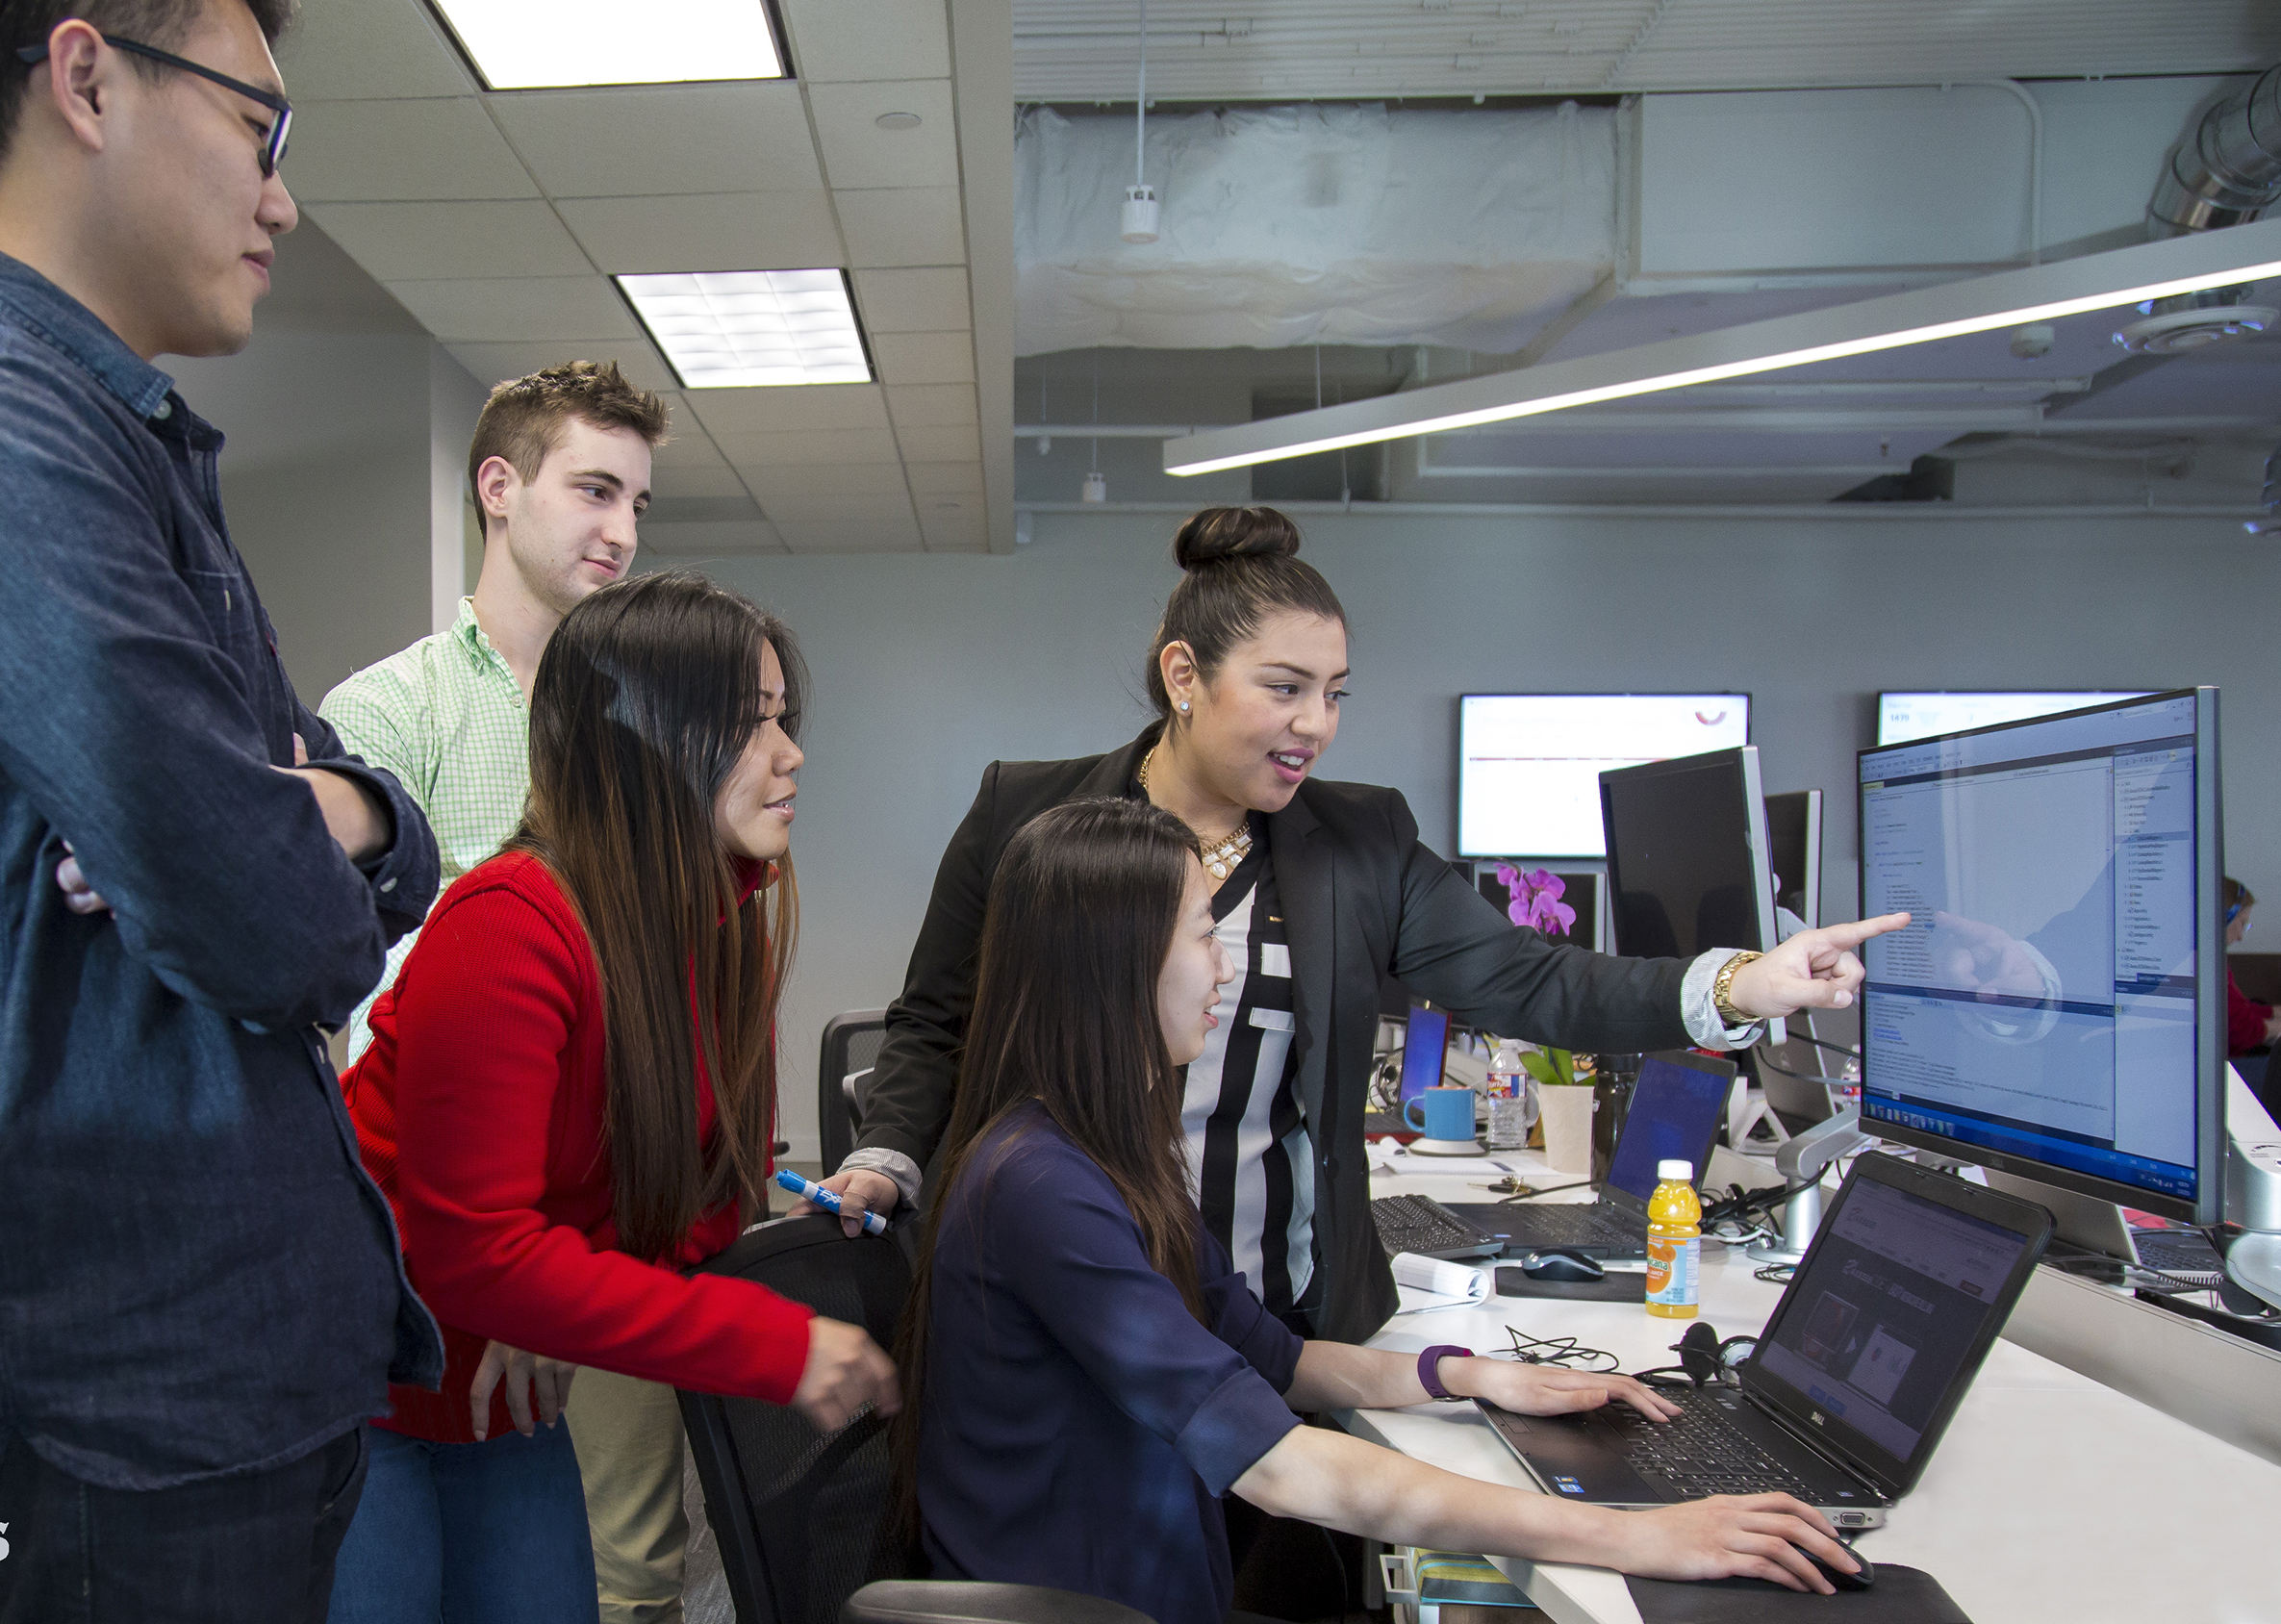 The engineering team at Axxess is a diverse one, with women taking leadership roles.